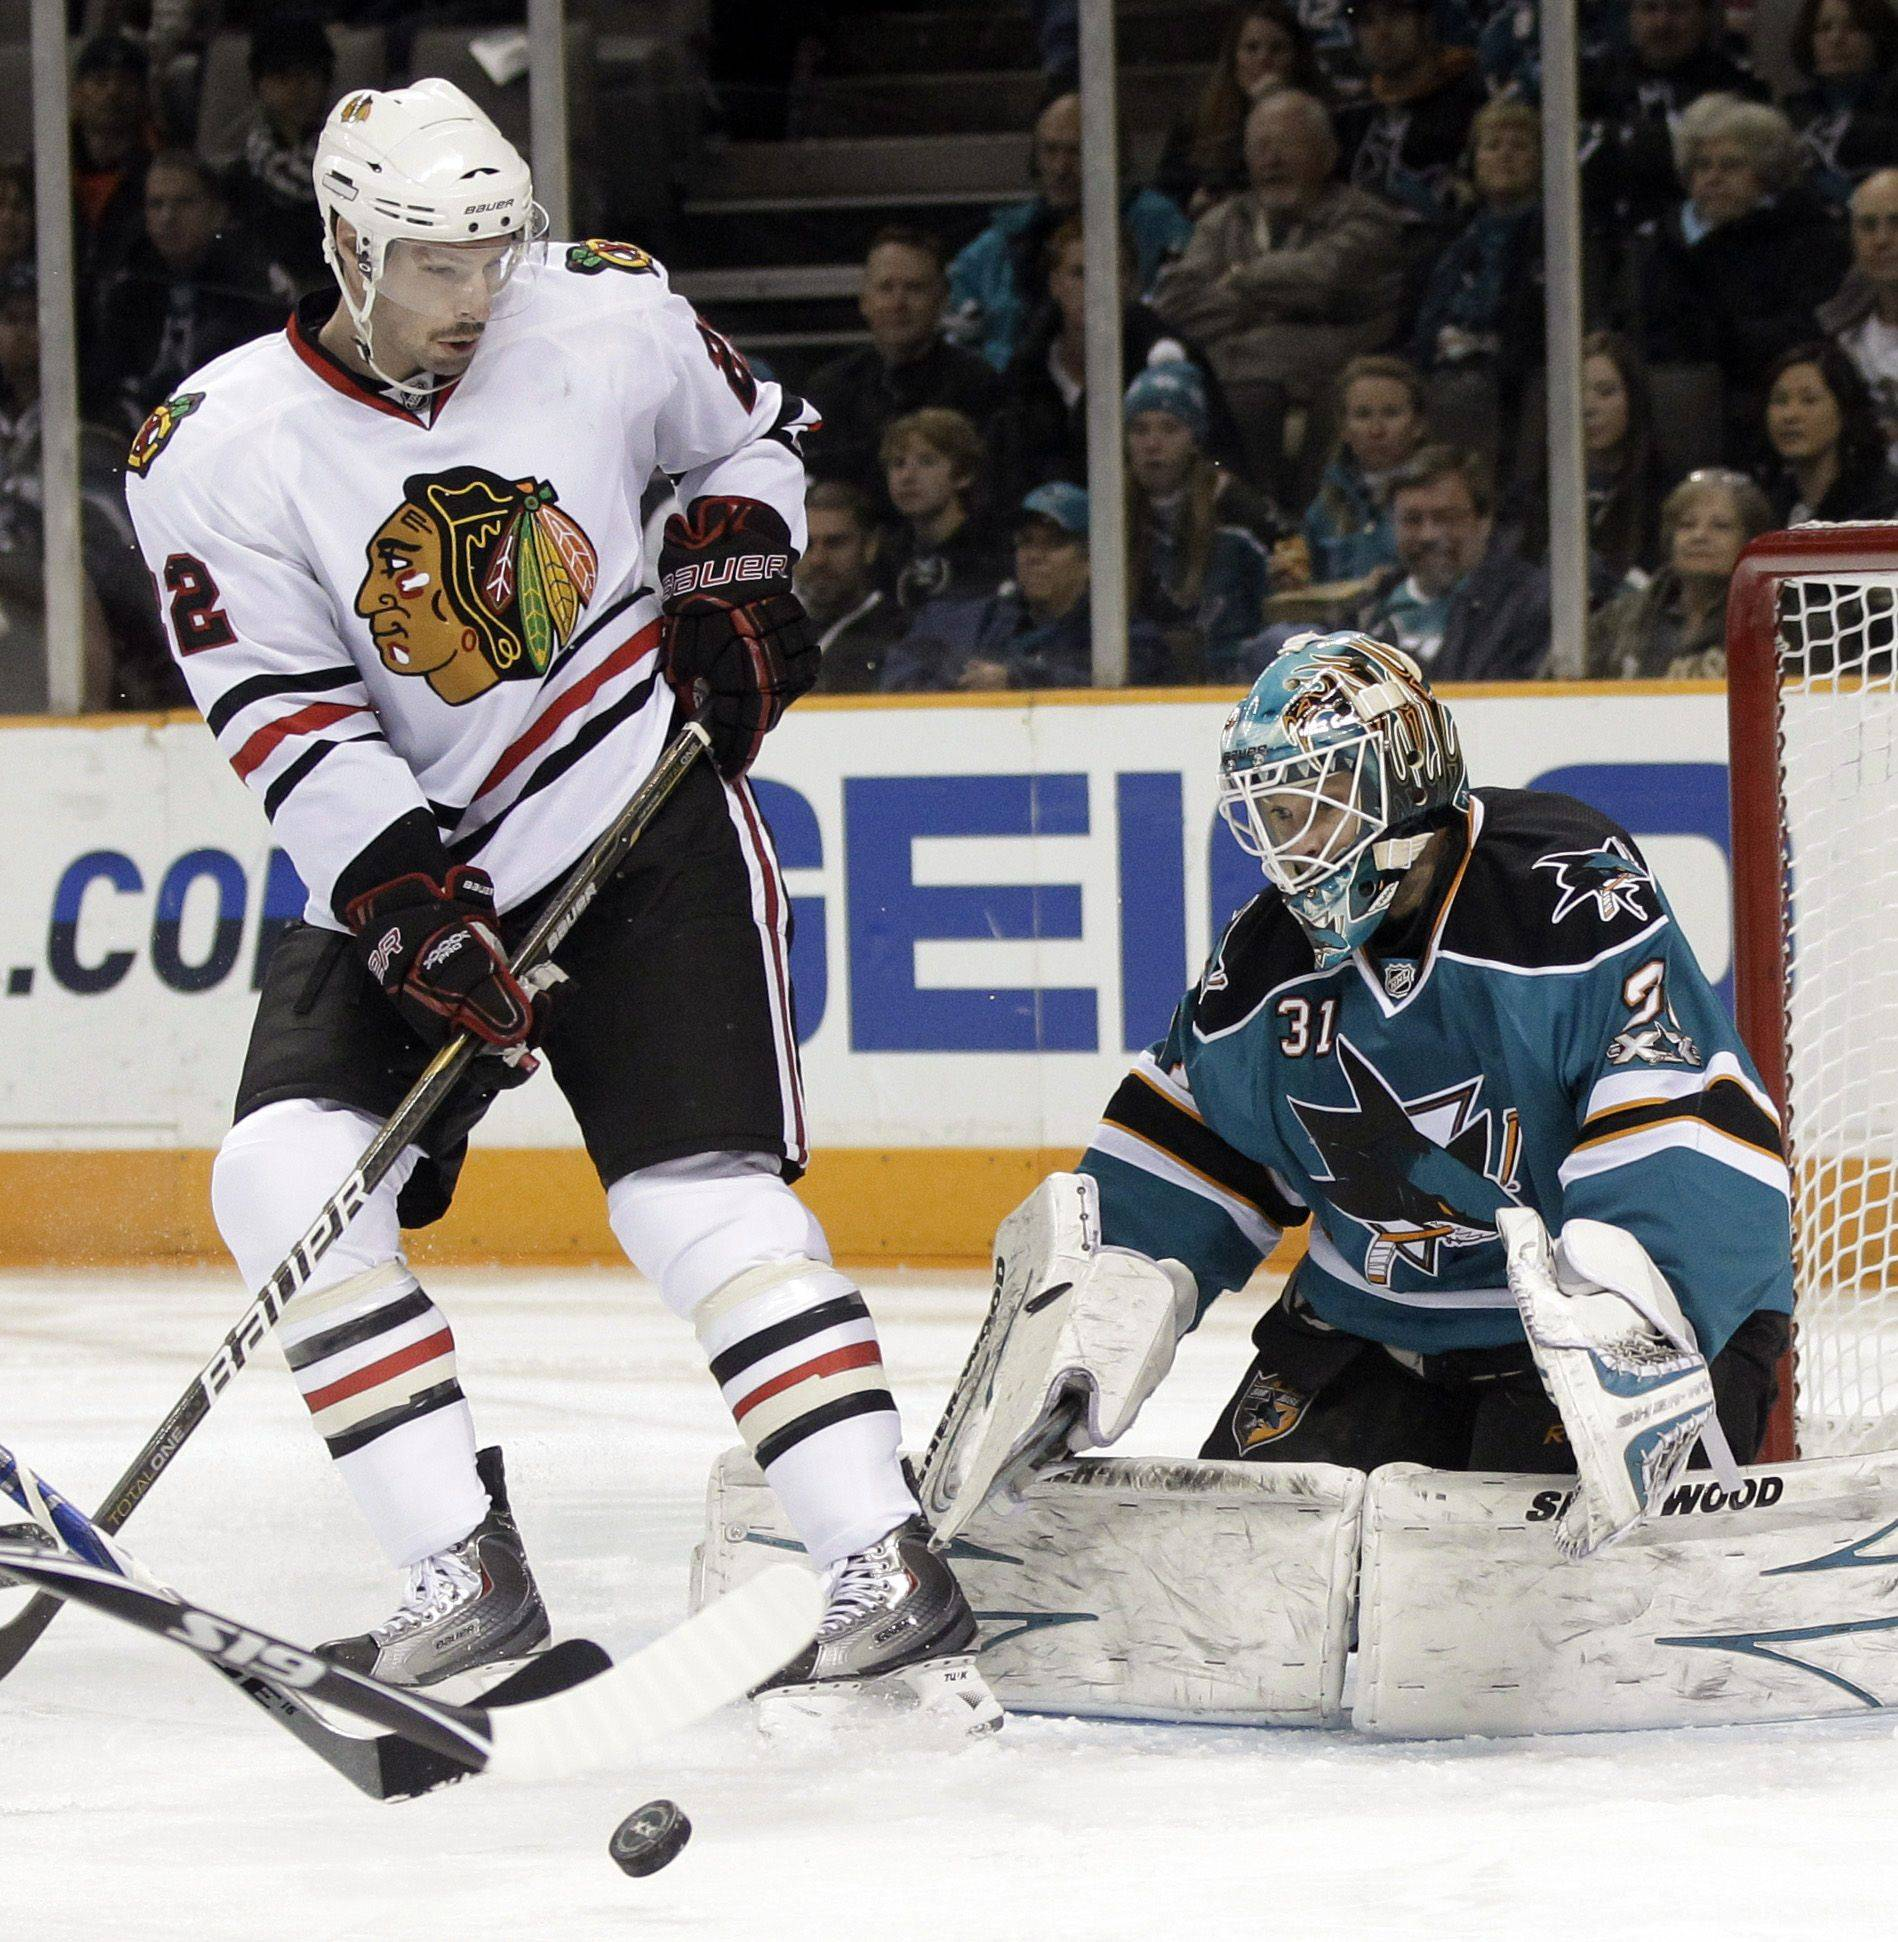 San Jose Sharks goalie Antti Niemi, right, of Finland, deflects a shot next to Chicago Blackhawks right wing Troy Brouwer during the first period of an NHL hockey game in San Jose, Calif., Wednesday, Nov. 24, 2010.